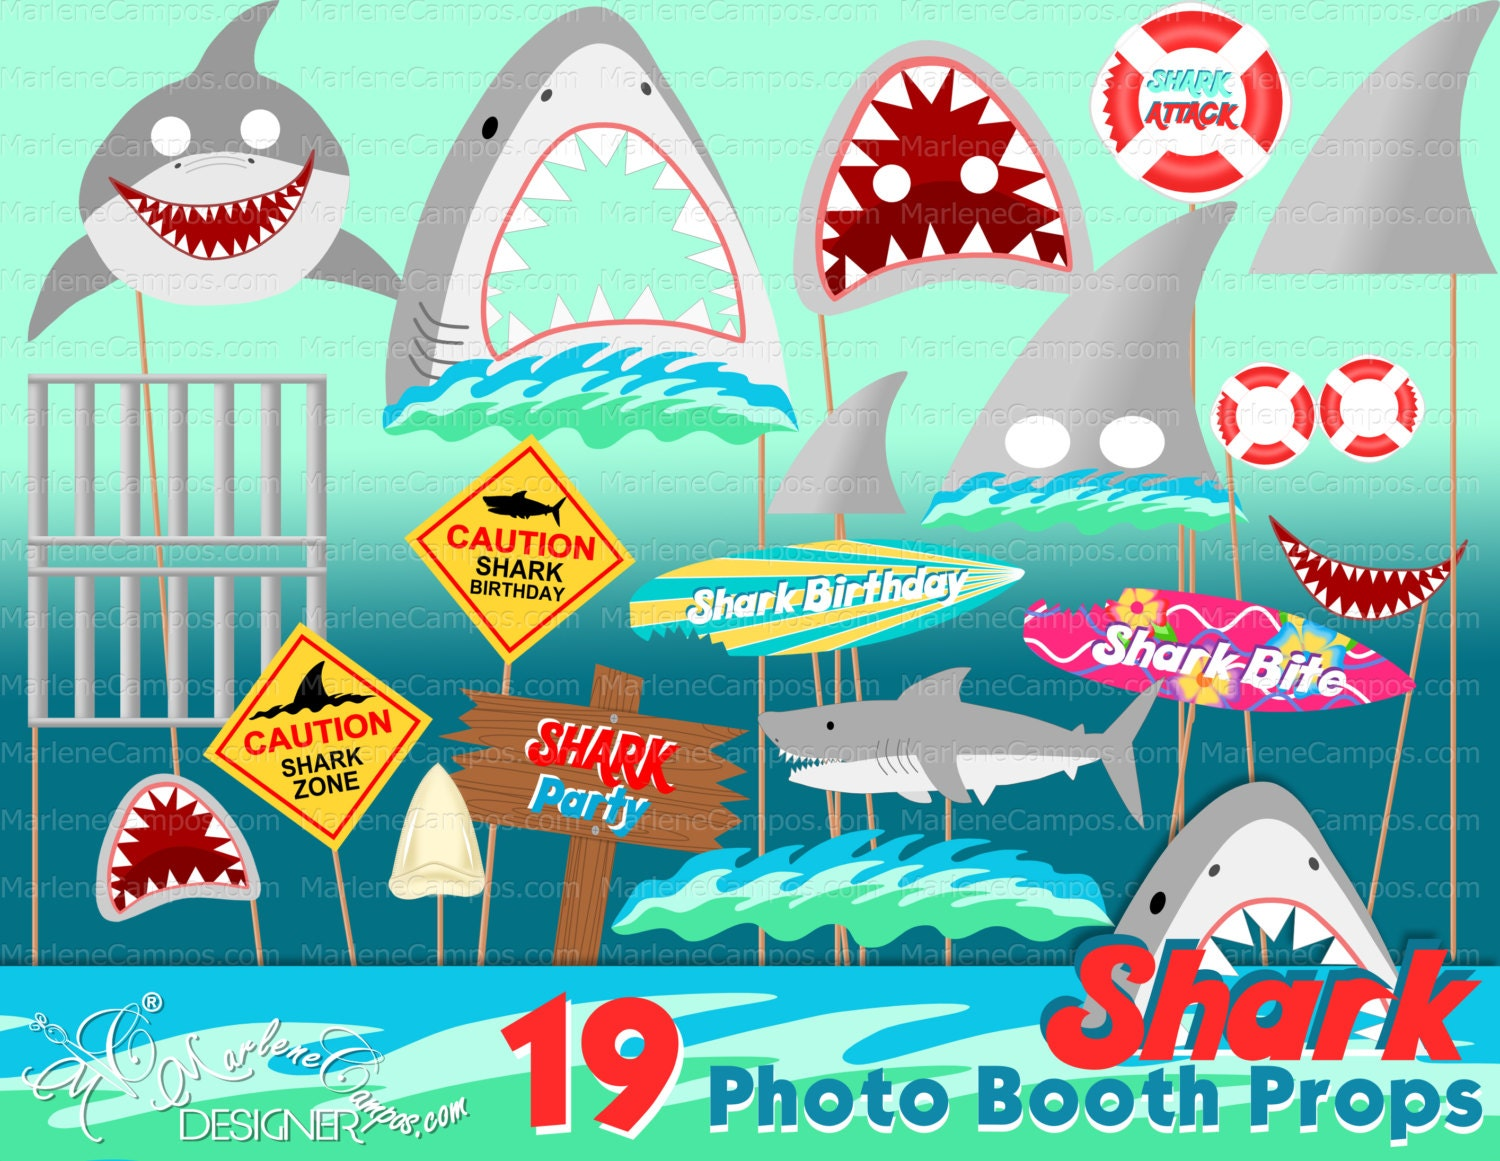 Shark Pool Party Ideas shark party via karas party ideas karaspartyideascom sea shark Shark Photo Booth Props Shark Birthday Party Shark Party Decor Photo Booth Props